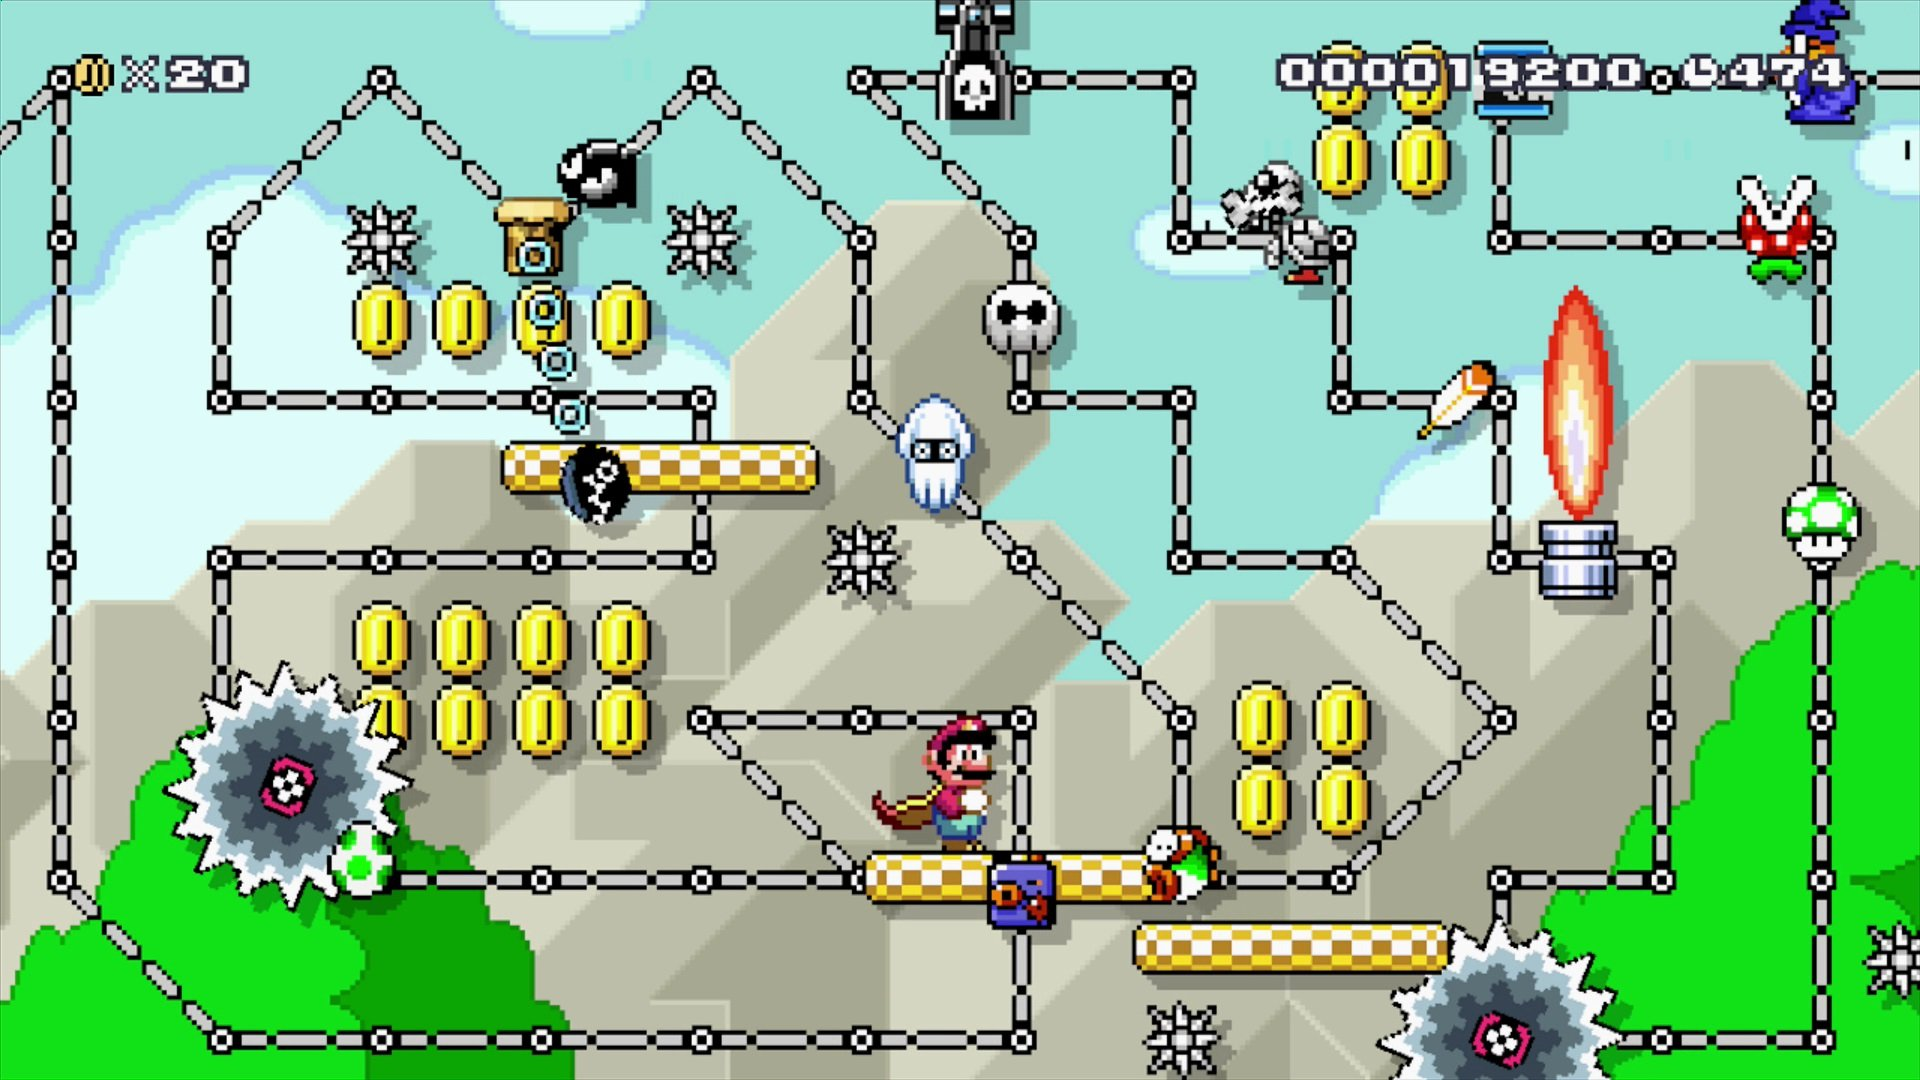 Can we just get Mario Maker on Switch now?